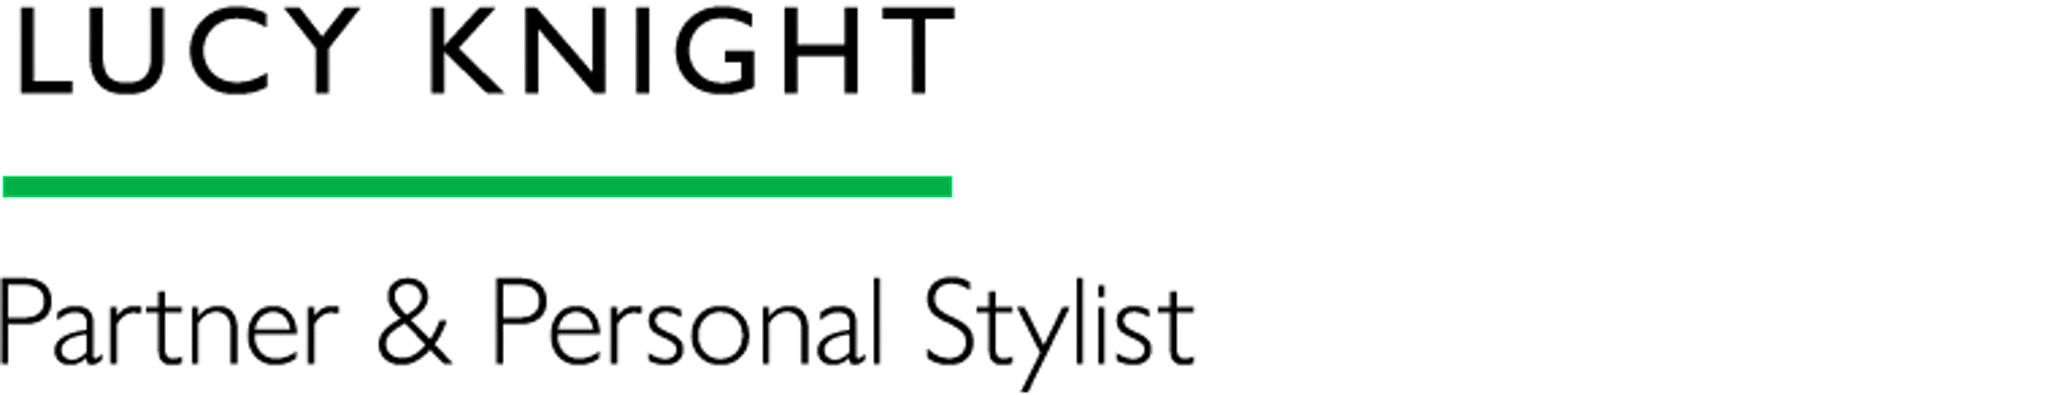 Lucy Knight - Partner & Personal Stylist